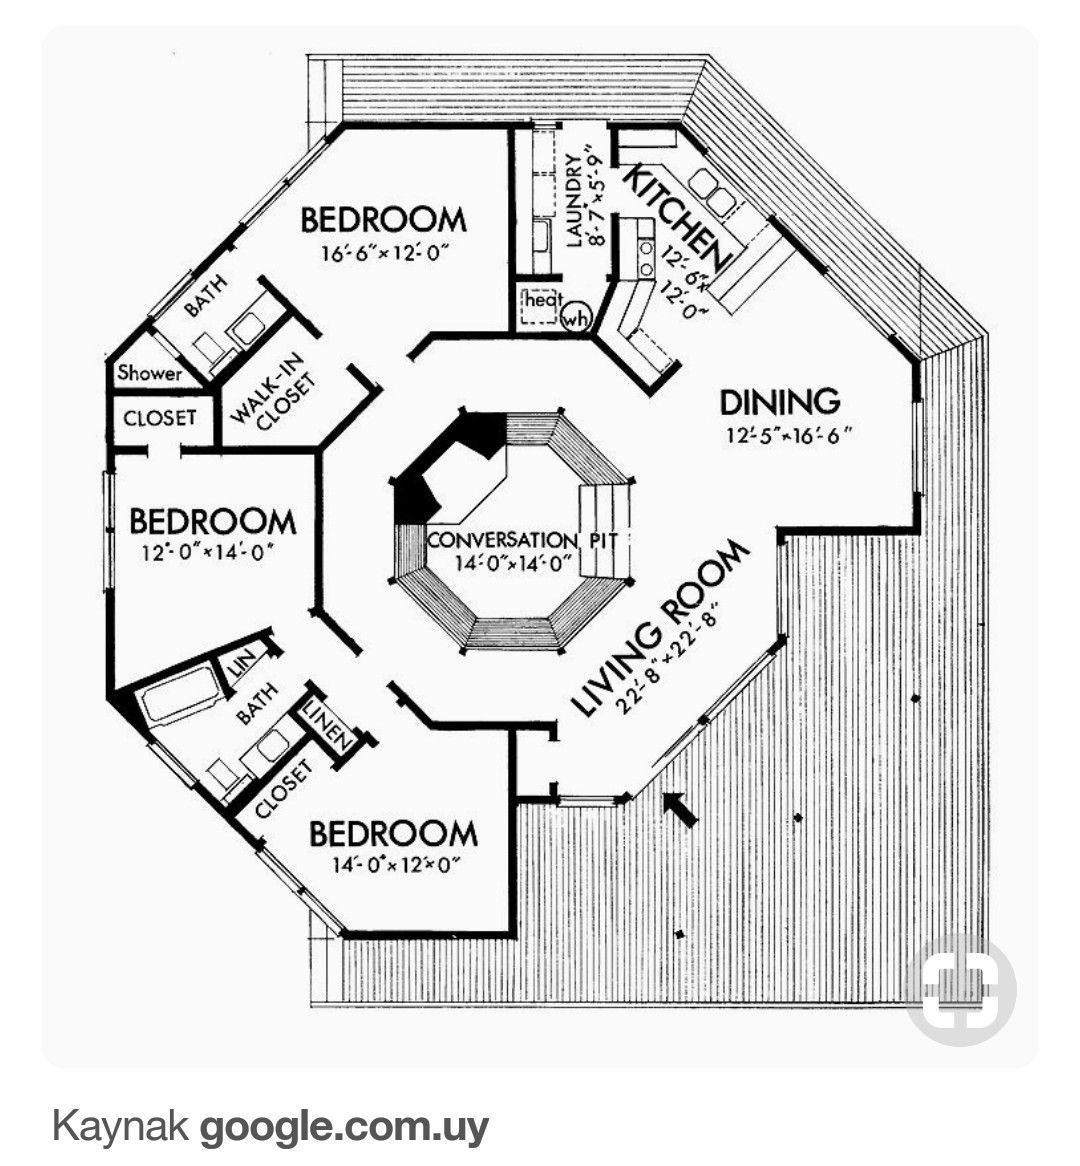 Pin By Shane N C On Mimari Proje Fotograf Detay Square House Plans Round House Plans Octagon House